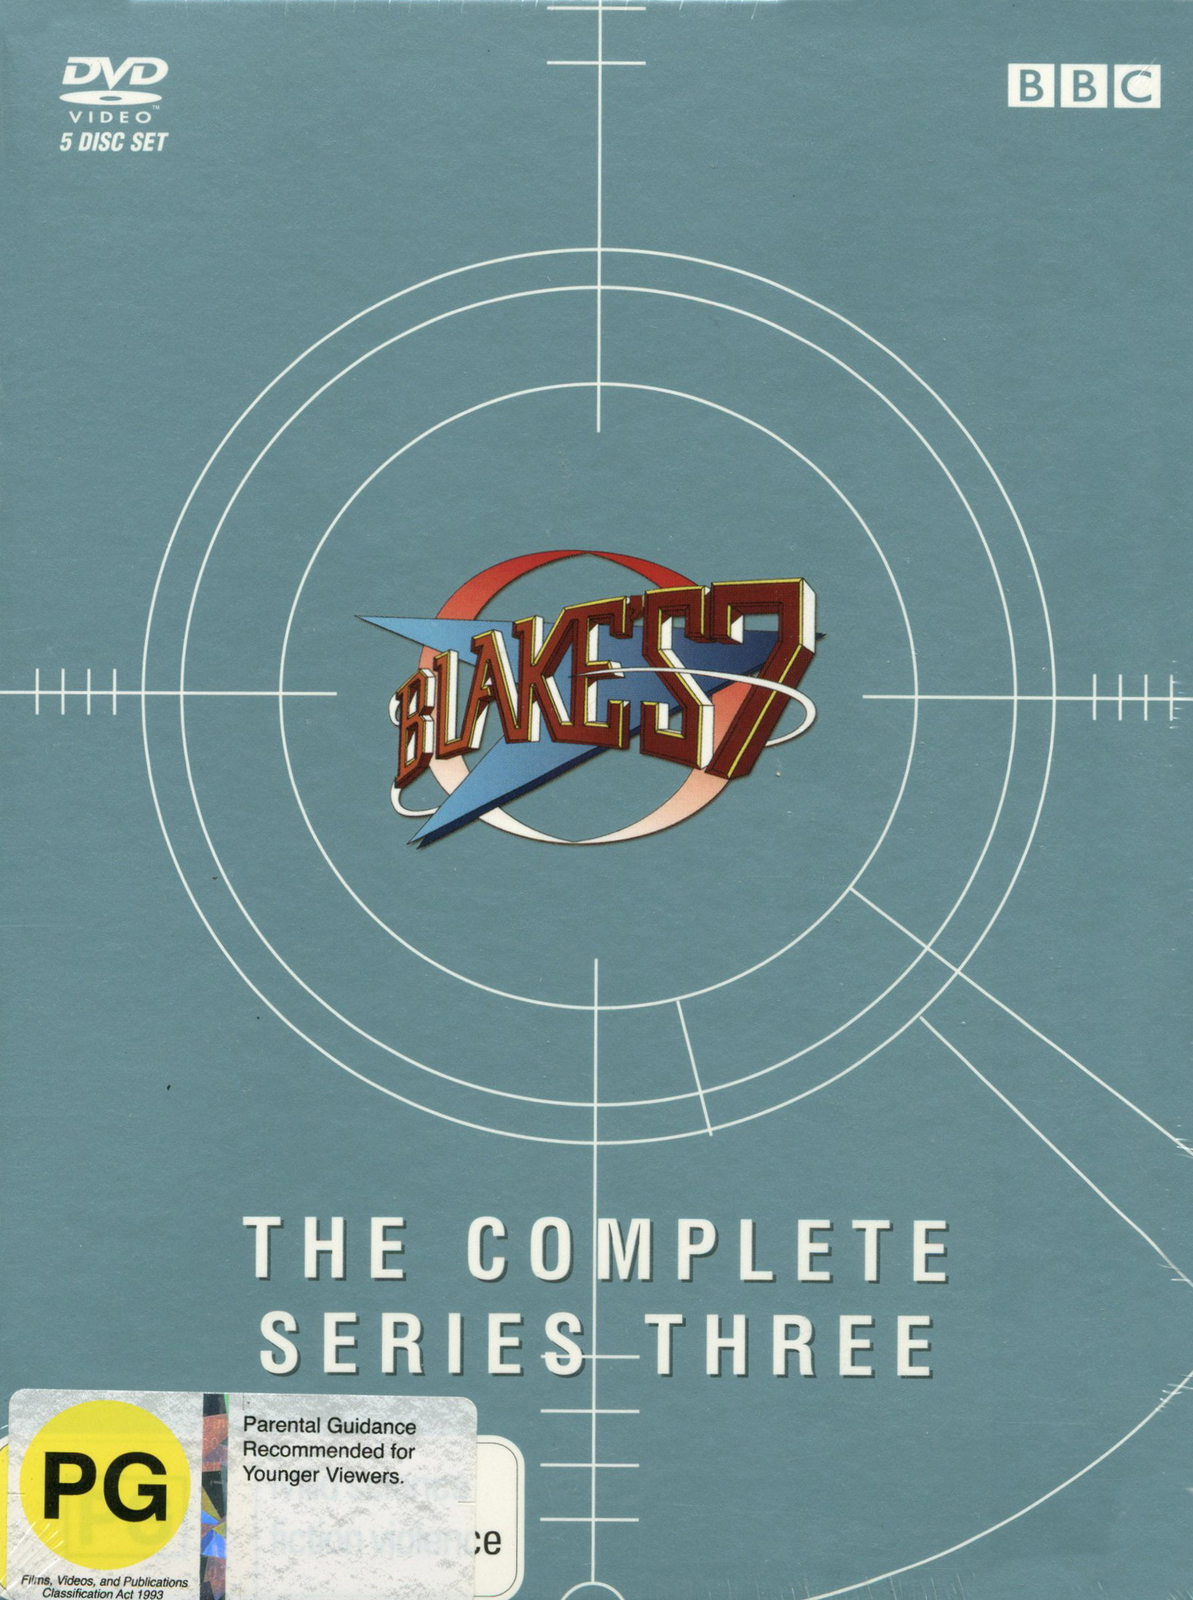 Blake's 7 - Complete Series 3 on DVD image